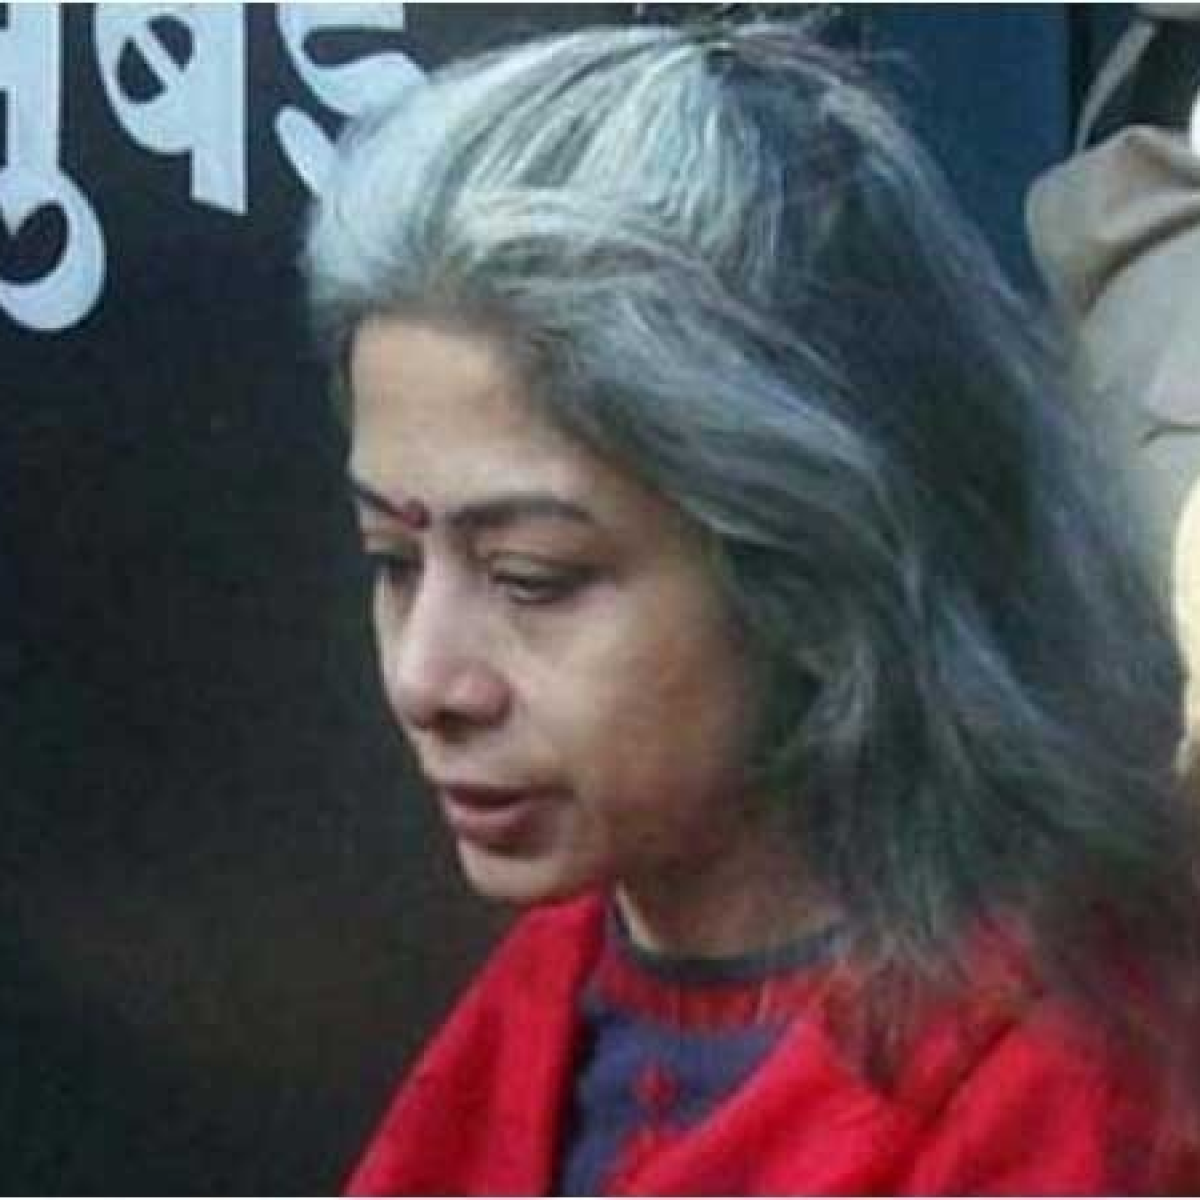 Sheena Bora murder case: Indrani Mukerjea moves CBI court for bail